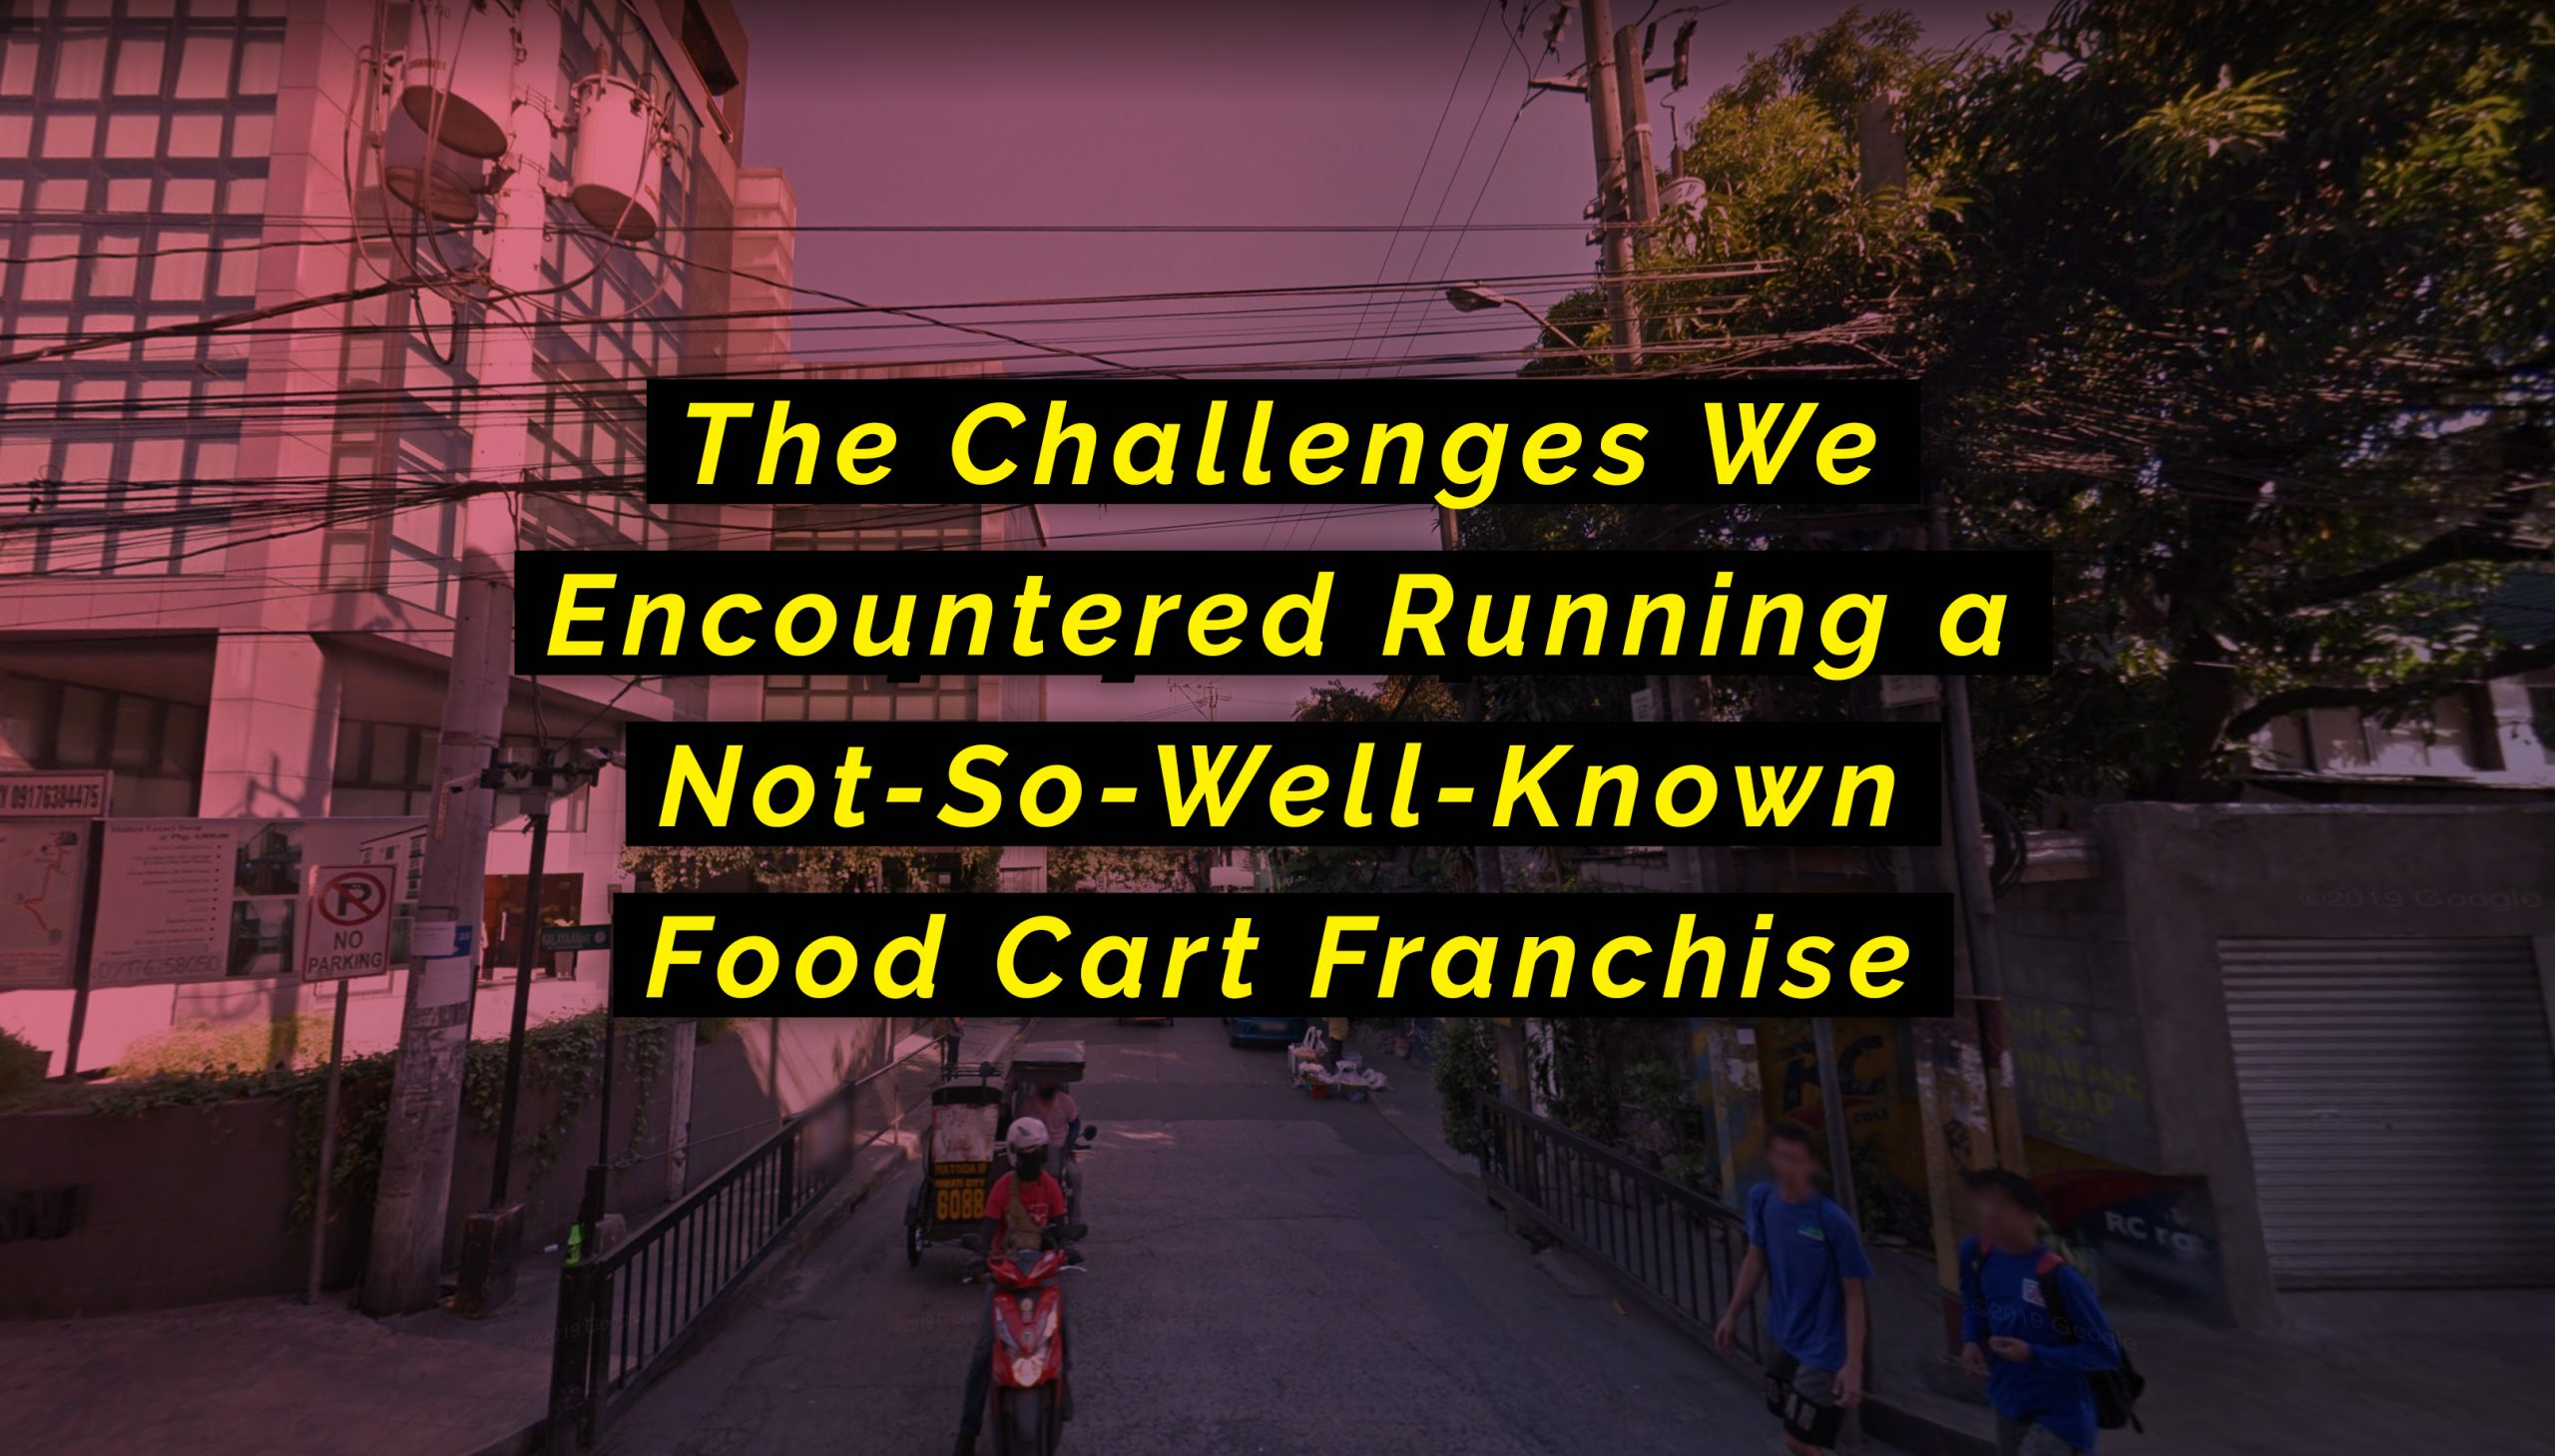 The Challenges We Encountered Running a Not-So-Well-Known Food Cart Franchise